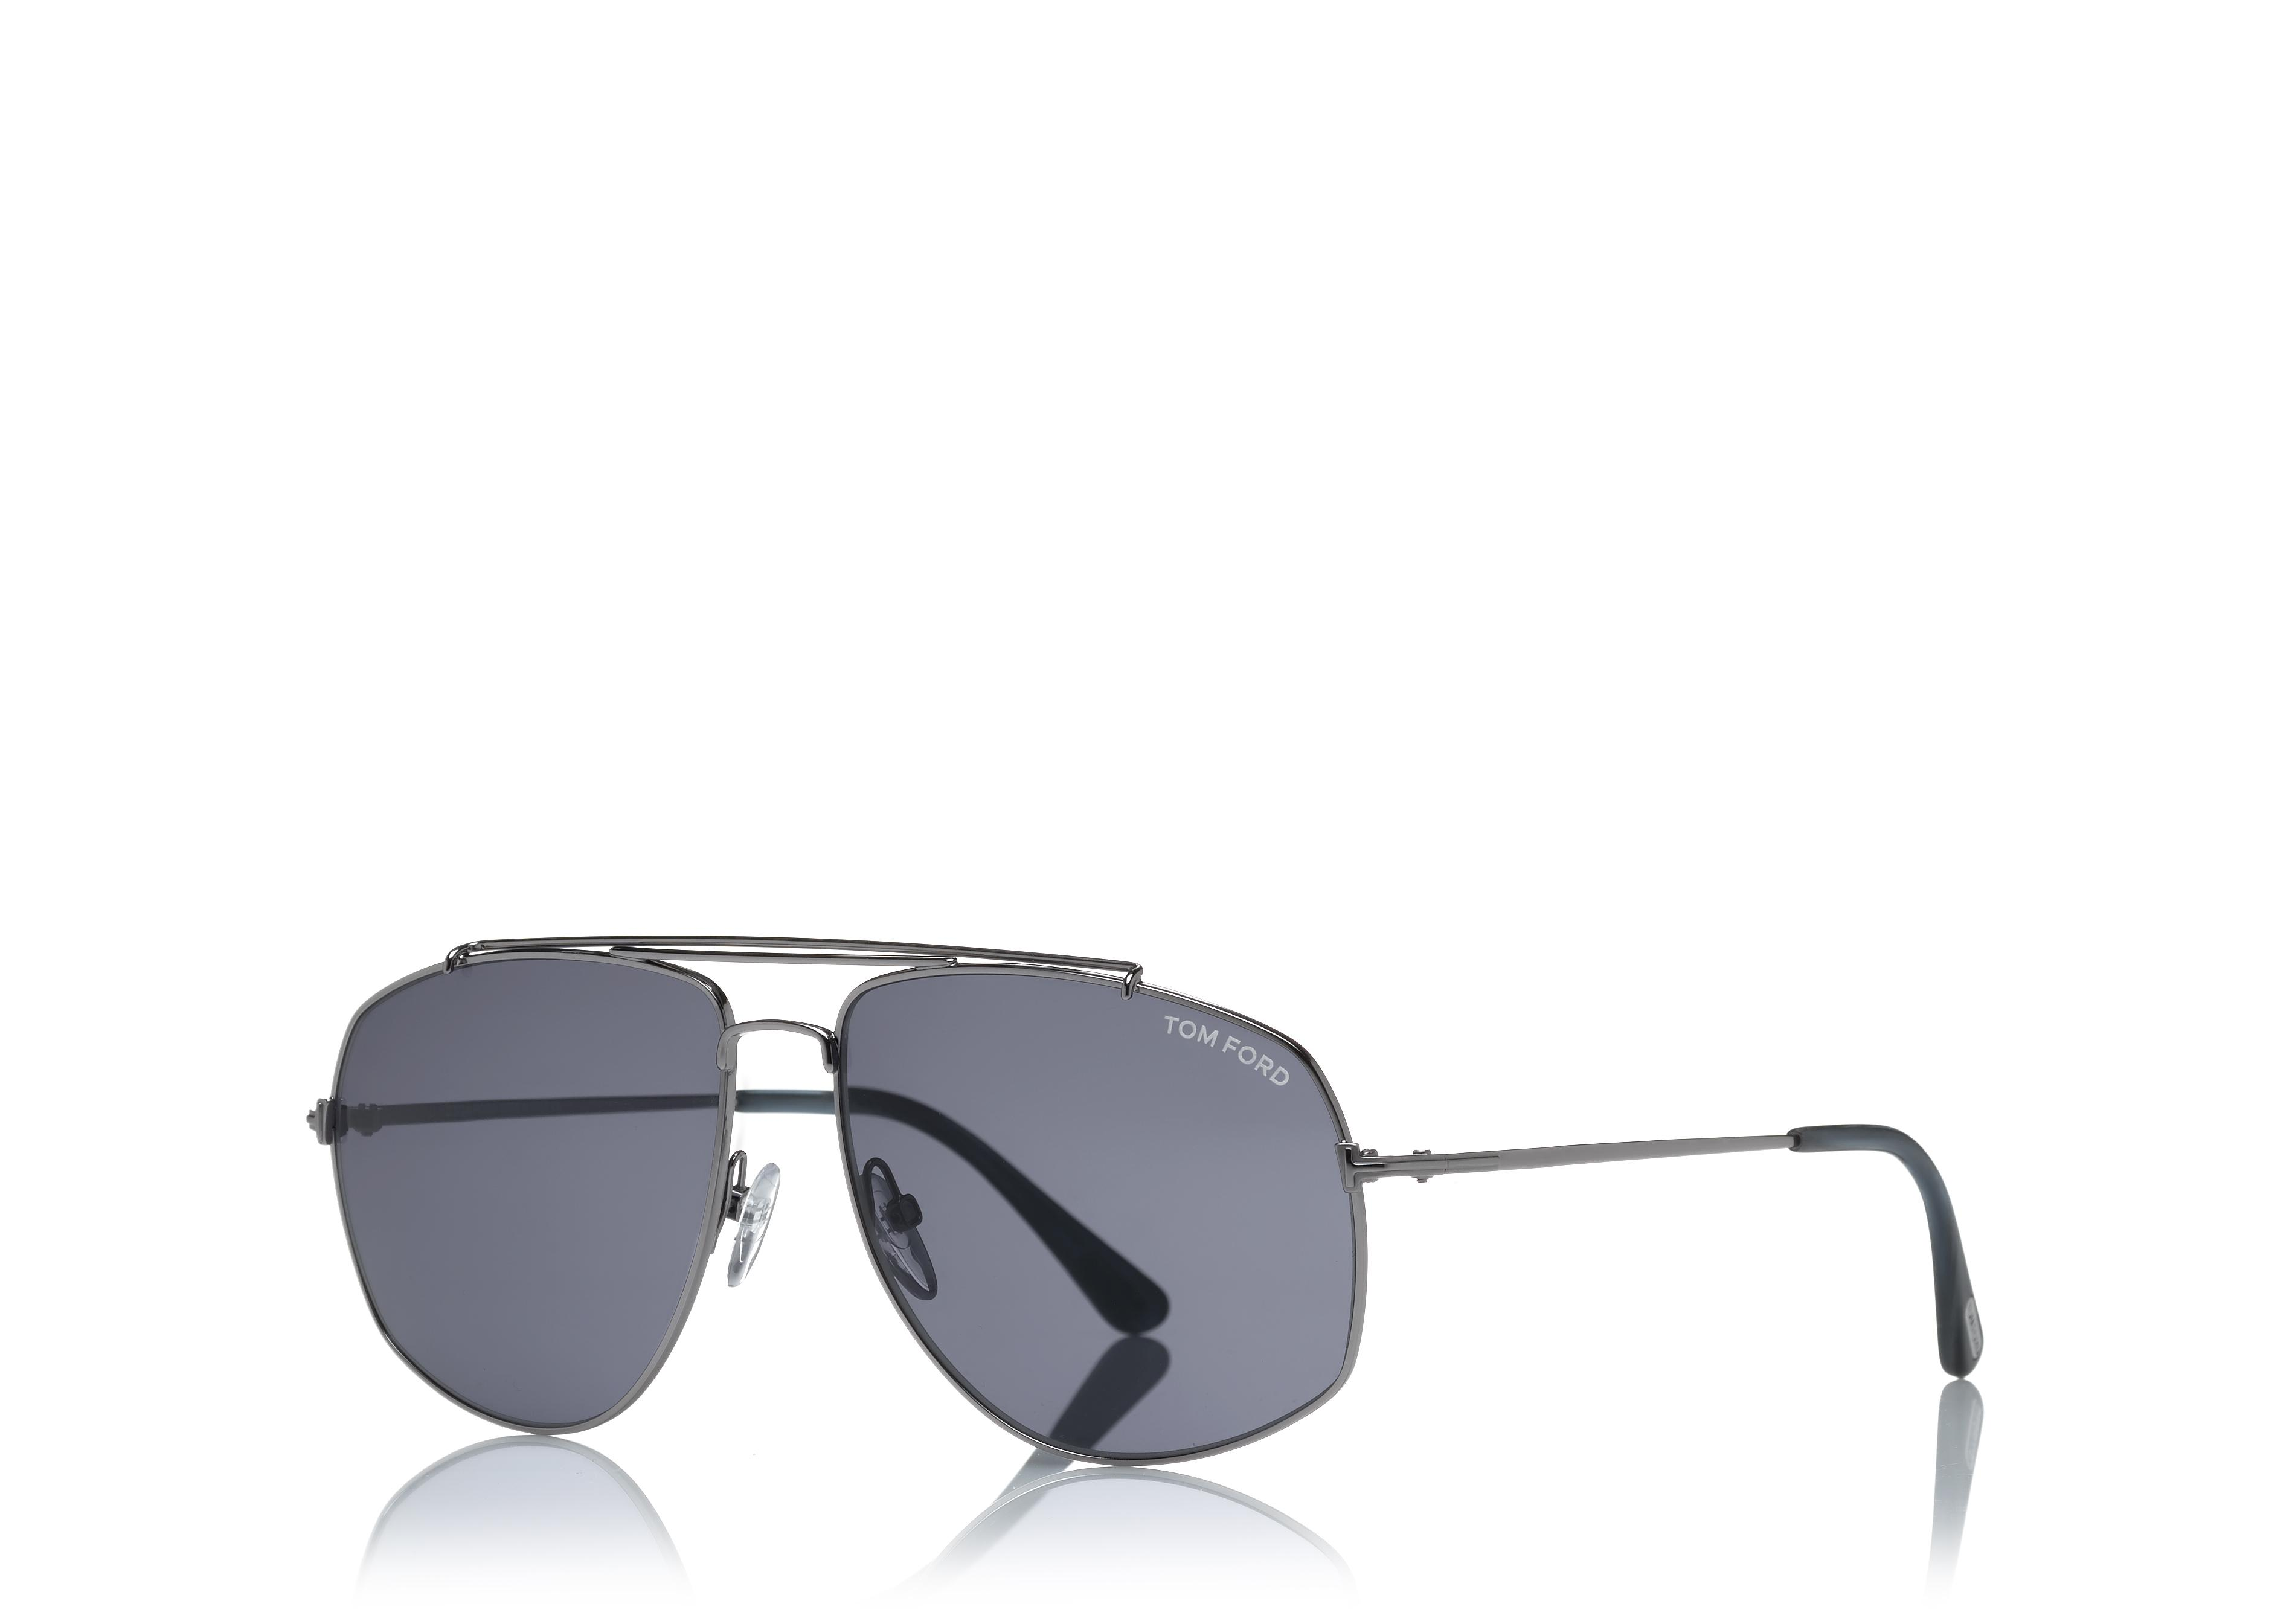 GEORGES SUNGLASSES C thumbnail